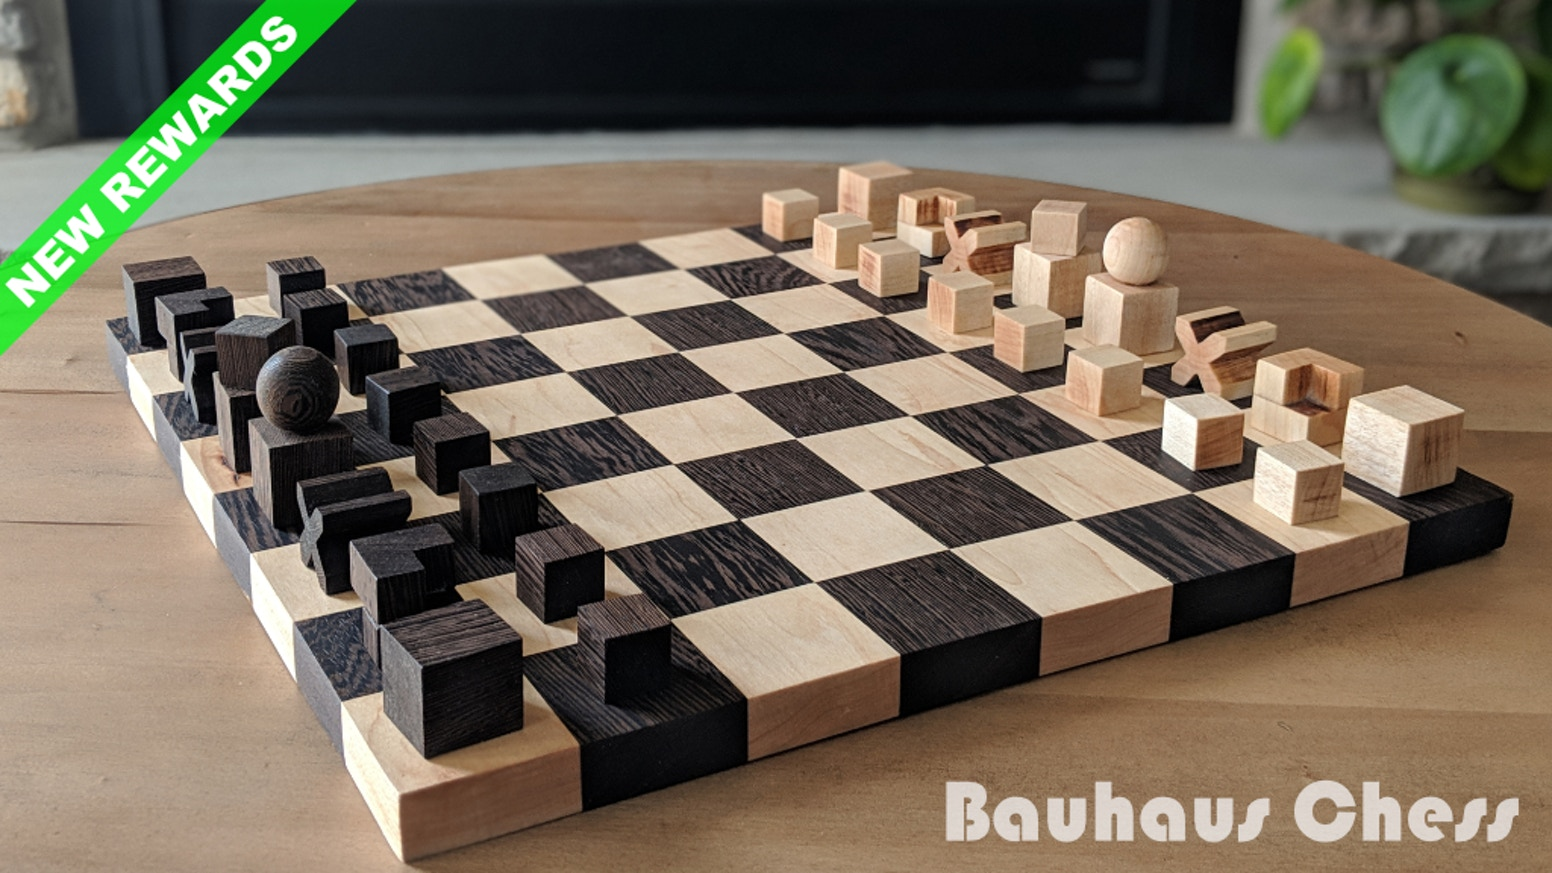 Bauhaus Chess is a handmade replica of Naef's famous 1924 design. It transforms pieces into geometric symbols based on their functions.